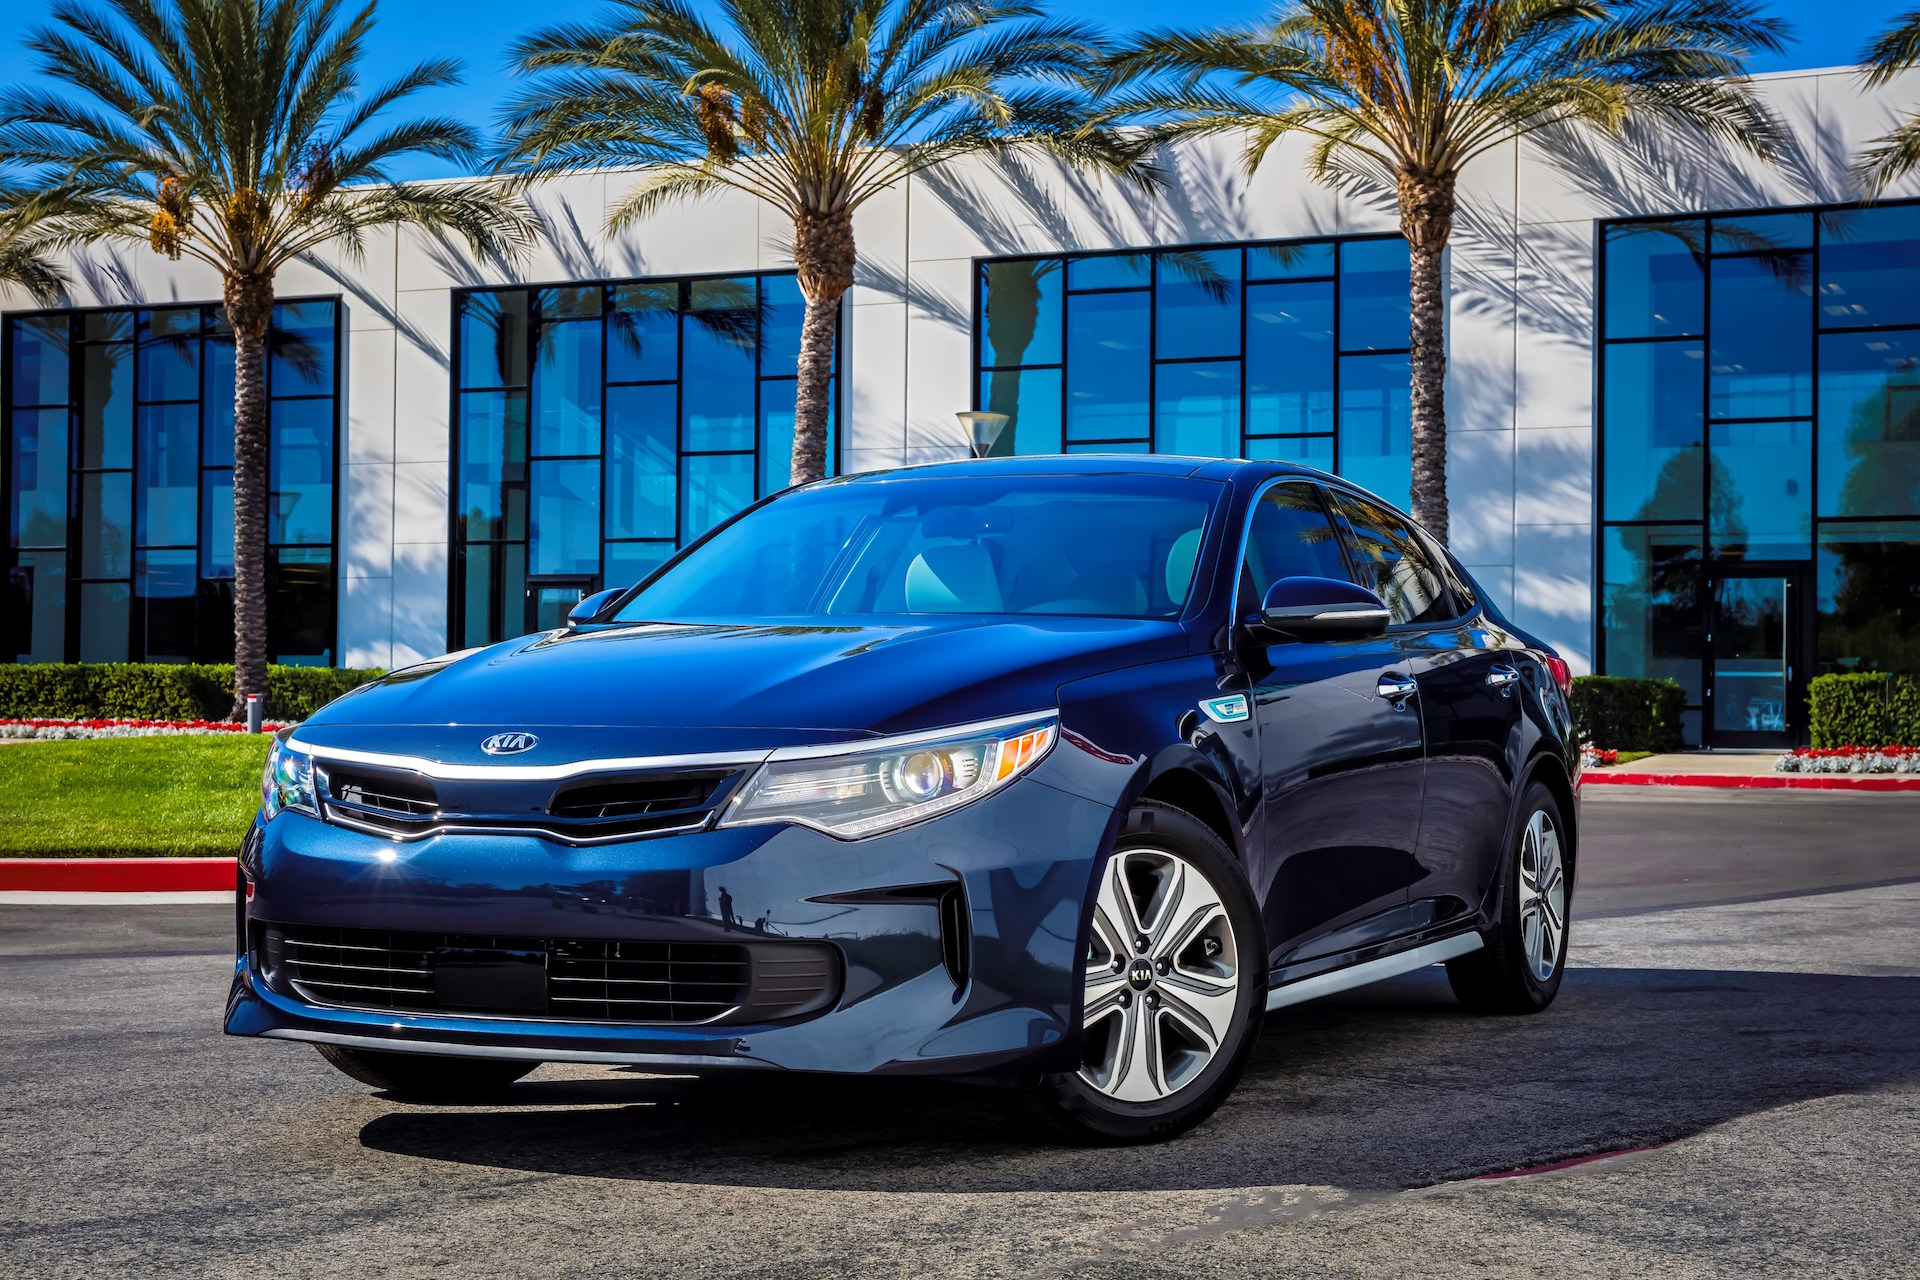 2017 kia optima hybrid priced from 26 845. Black Bedroom Furniture Sets. Home Design Ideas